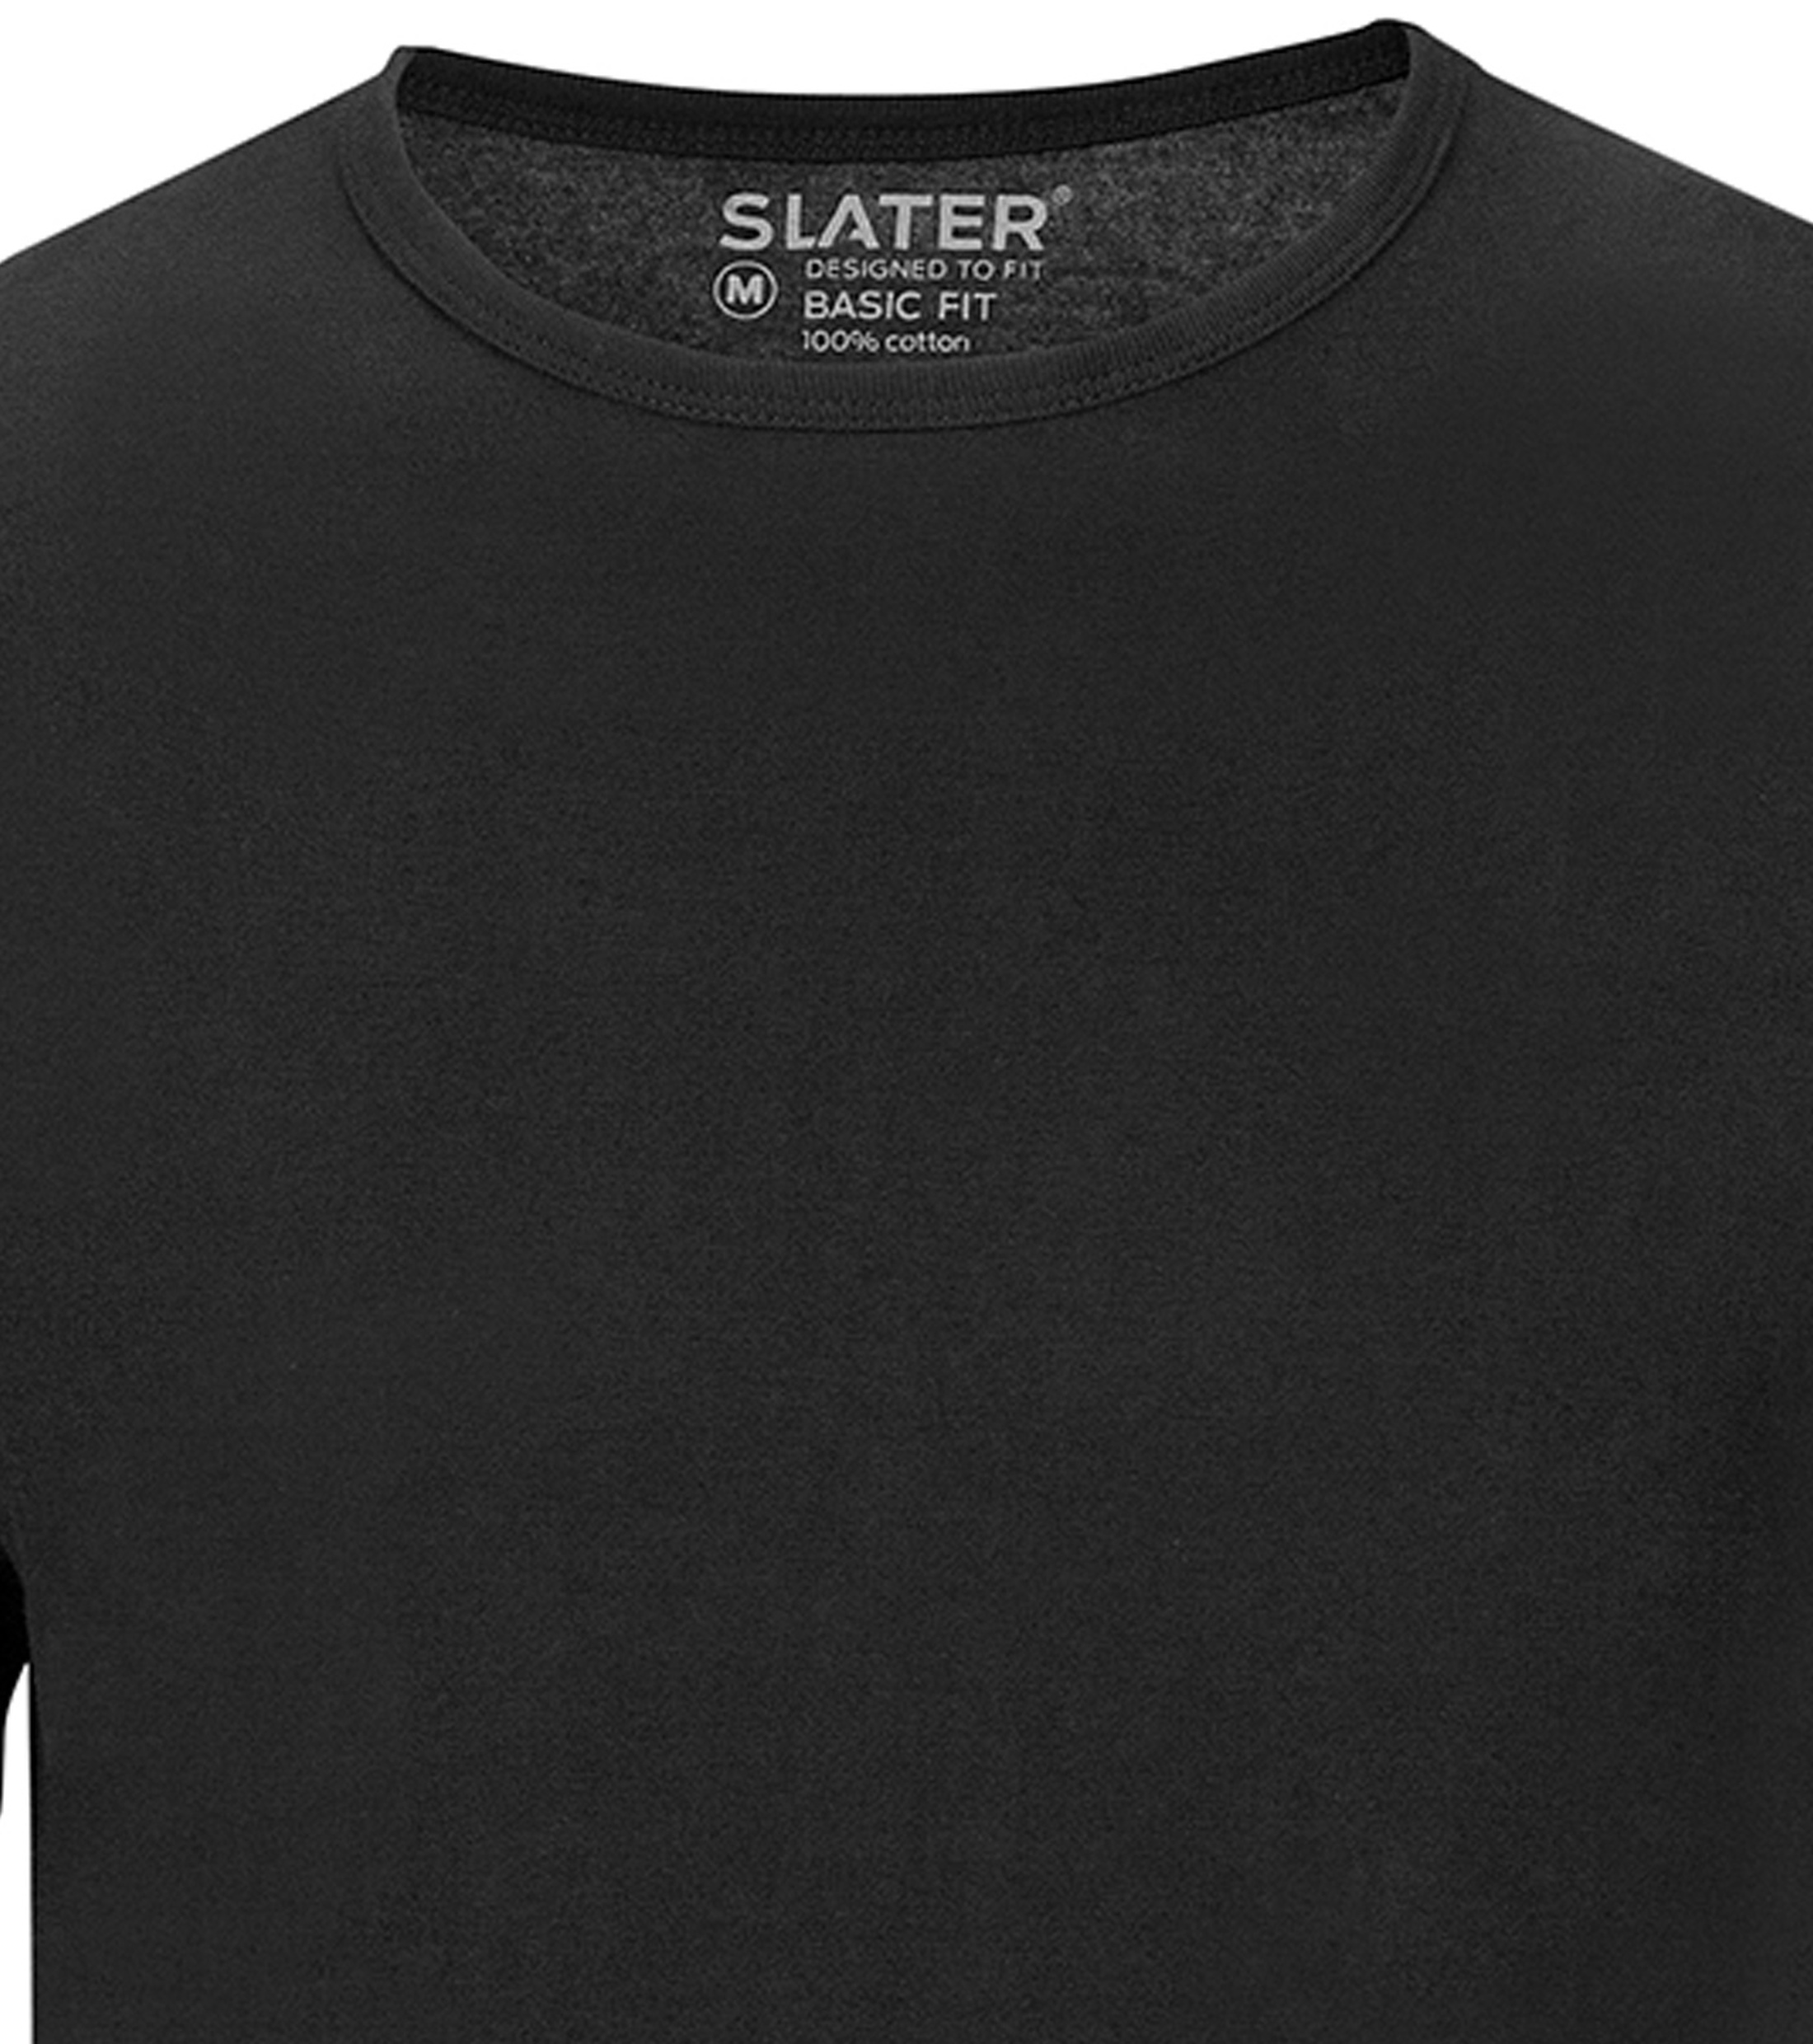 Slater 2-pack Basic Fit T-shirt Zwart foto 1